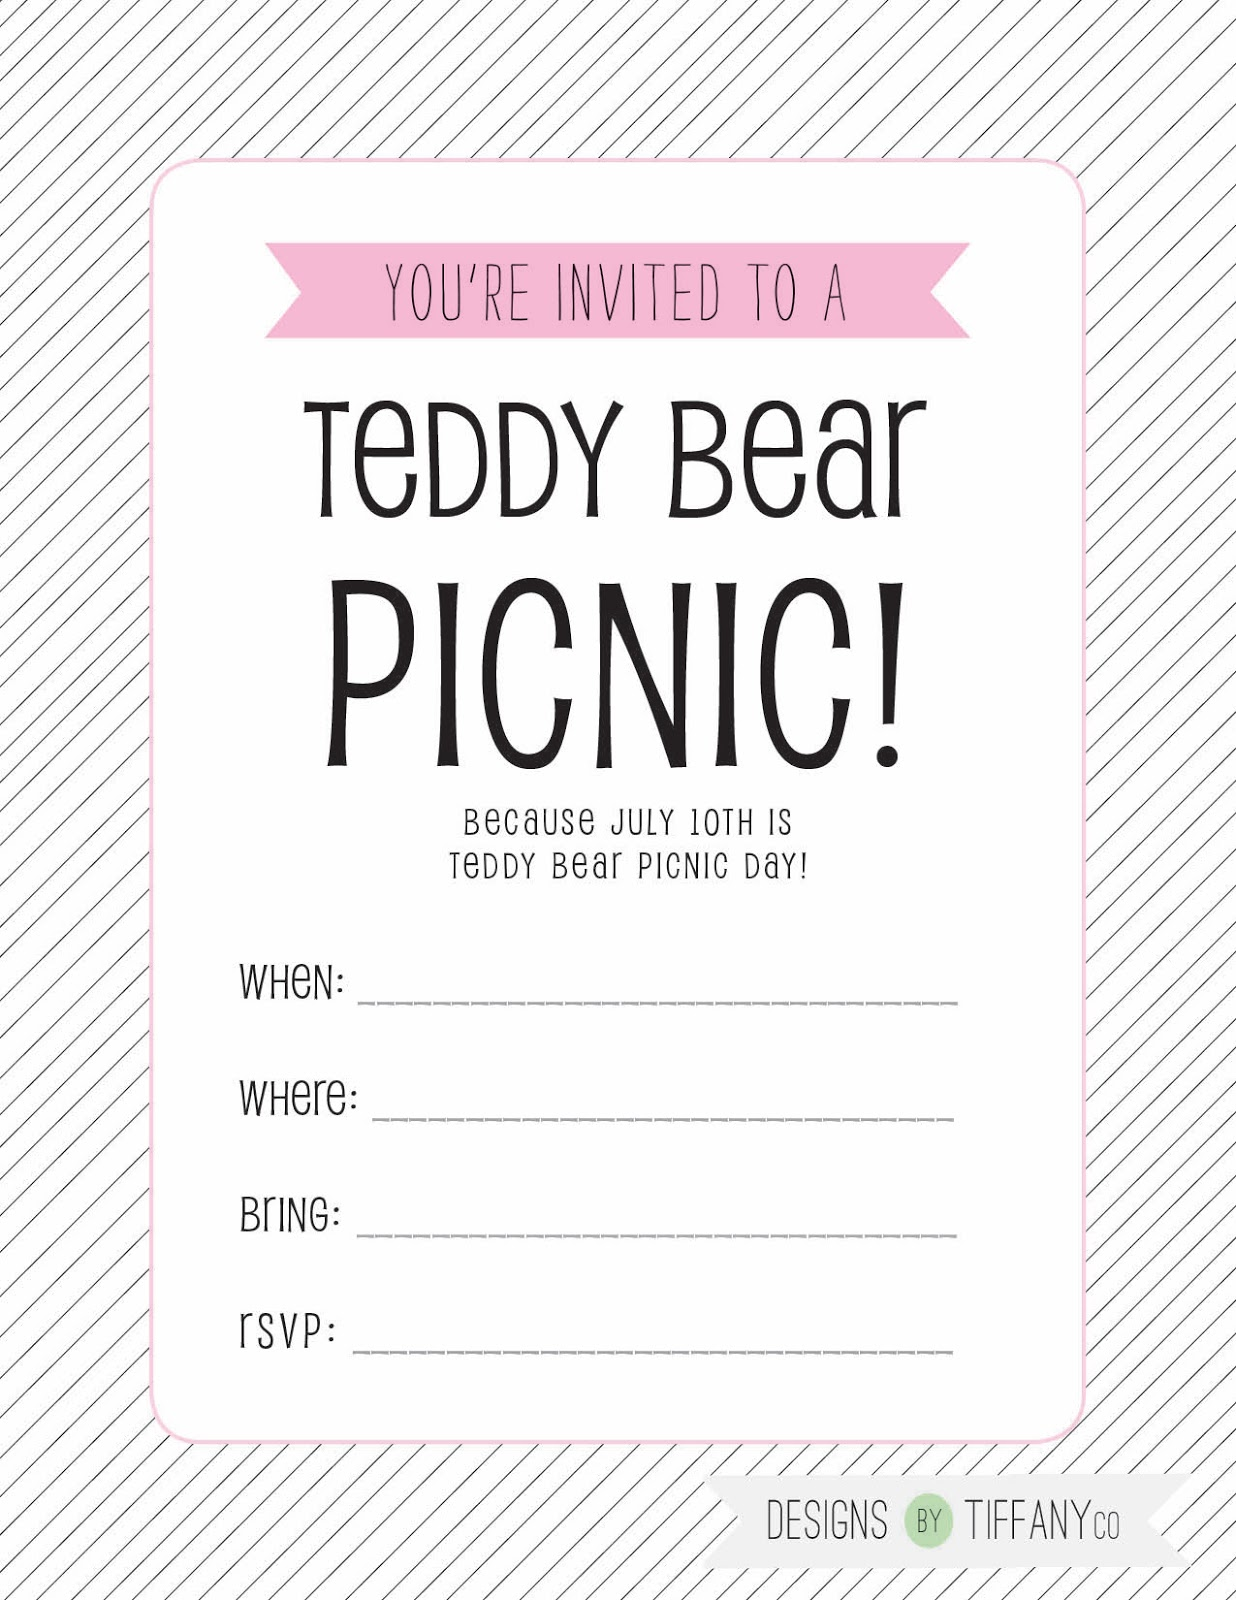 Free Printable : July 10th is Teddy Bear Picnic Day! - Designs by ...